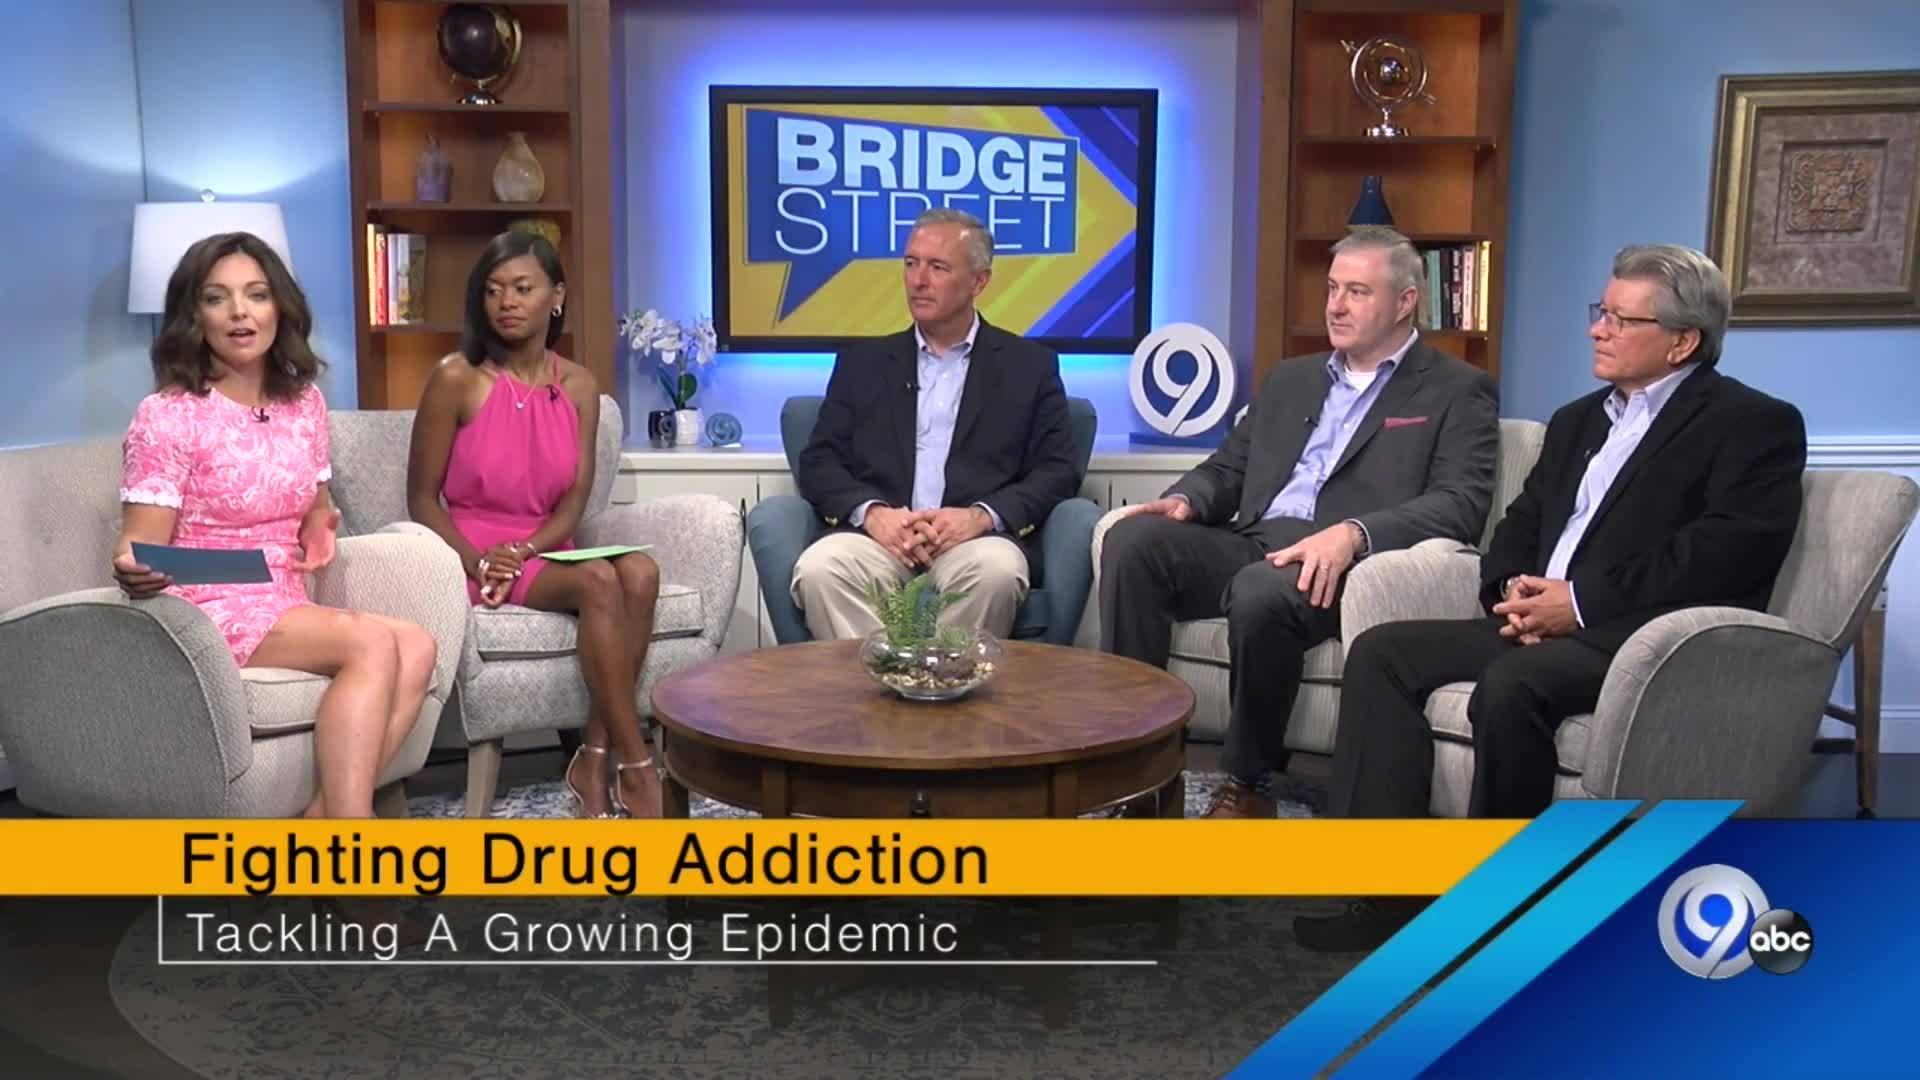 Bridge_Street_Battling_Drug_Addiction_6__4_20190607154146